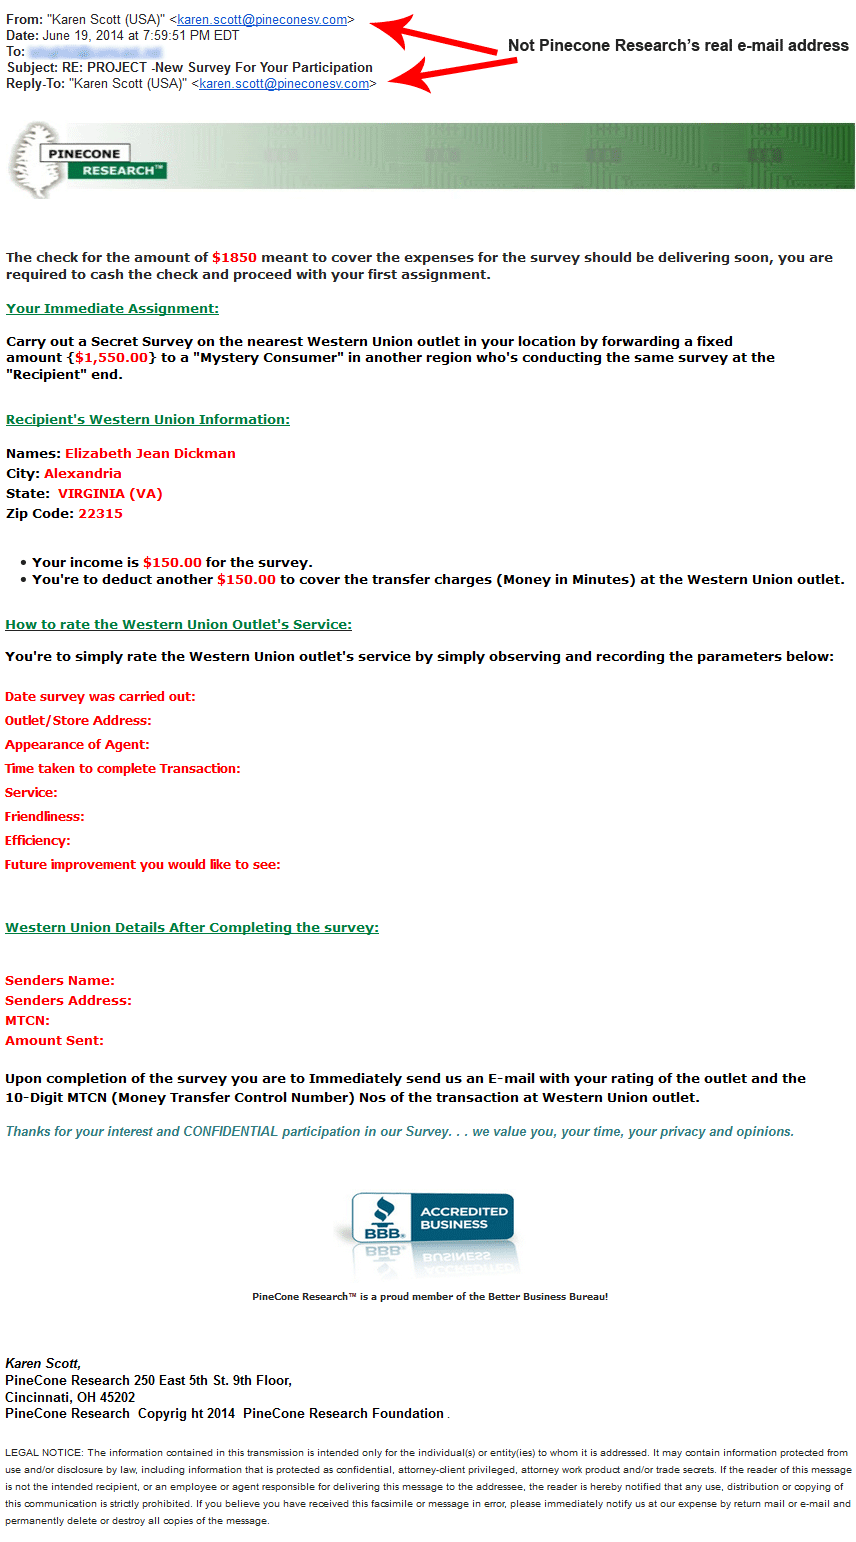 Pinecone Research fake email 5